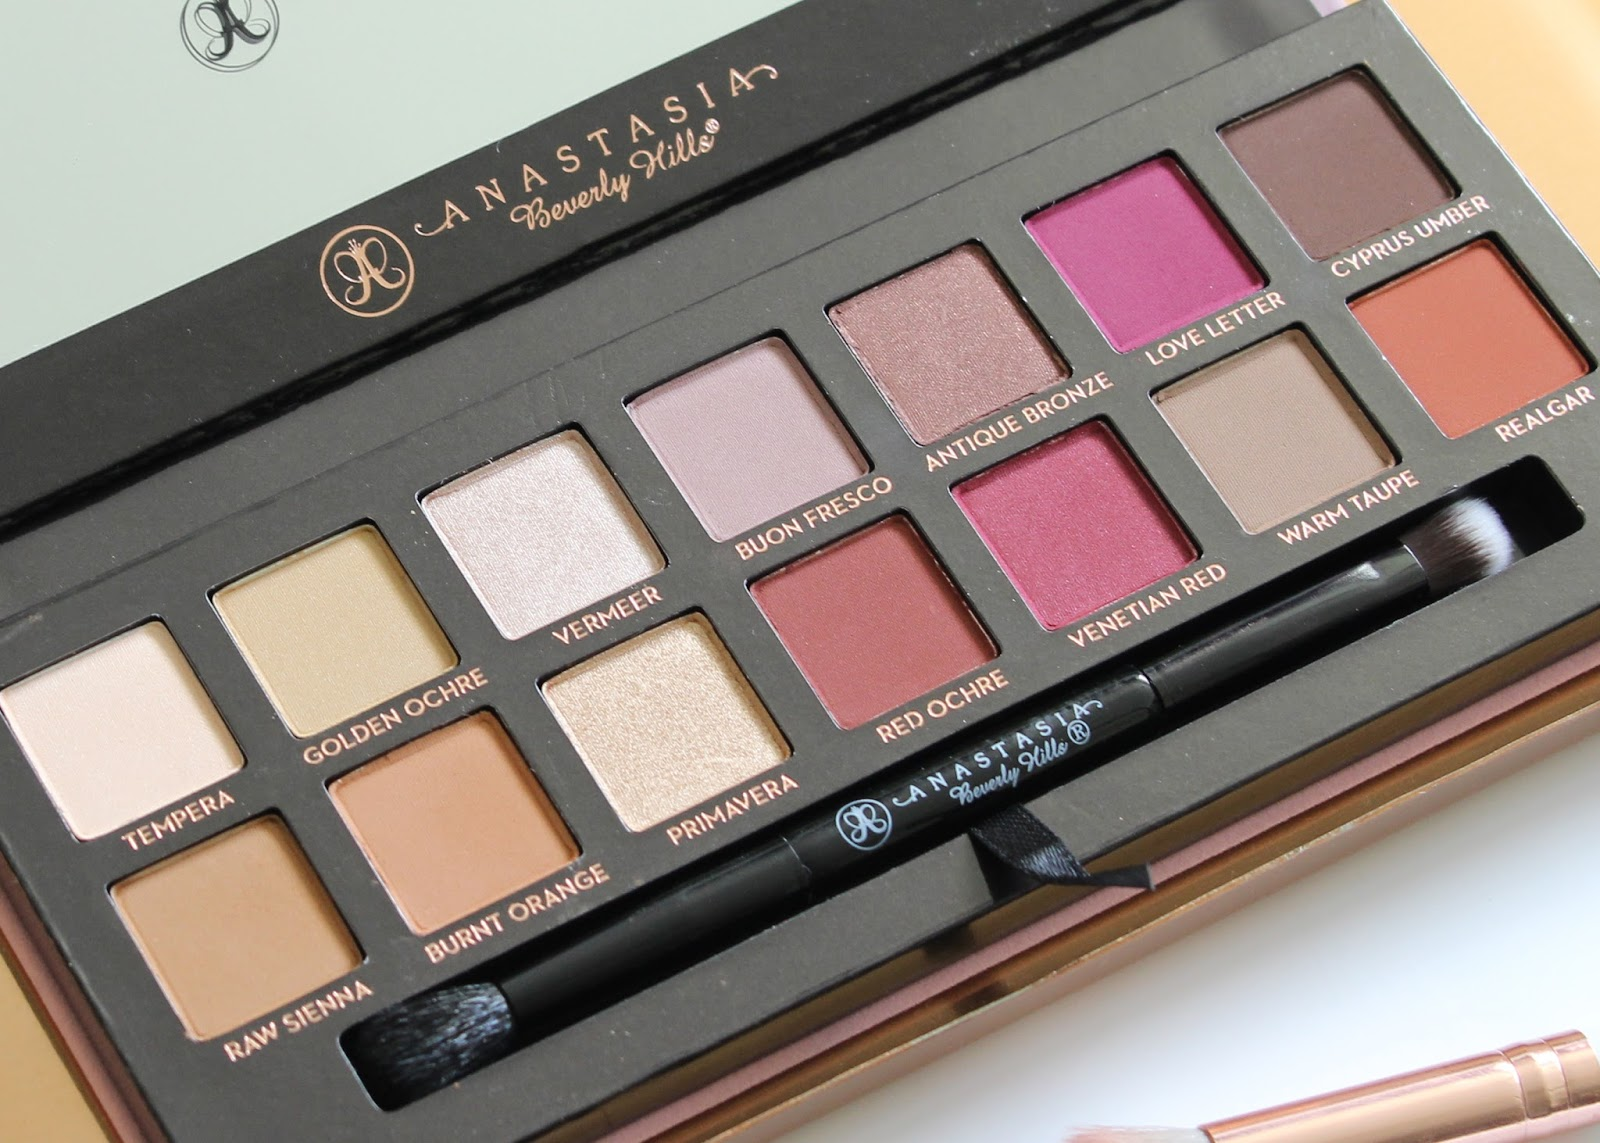 Modern Renaissance Eye Shadow Palette by Anastasia Beverly Hills | Review & Swatches